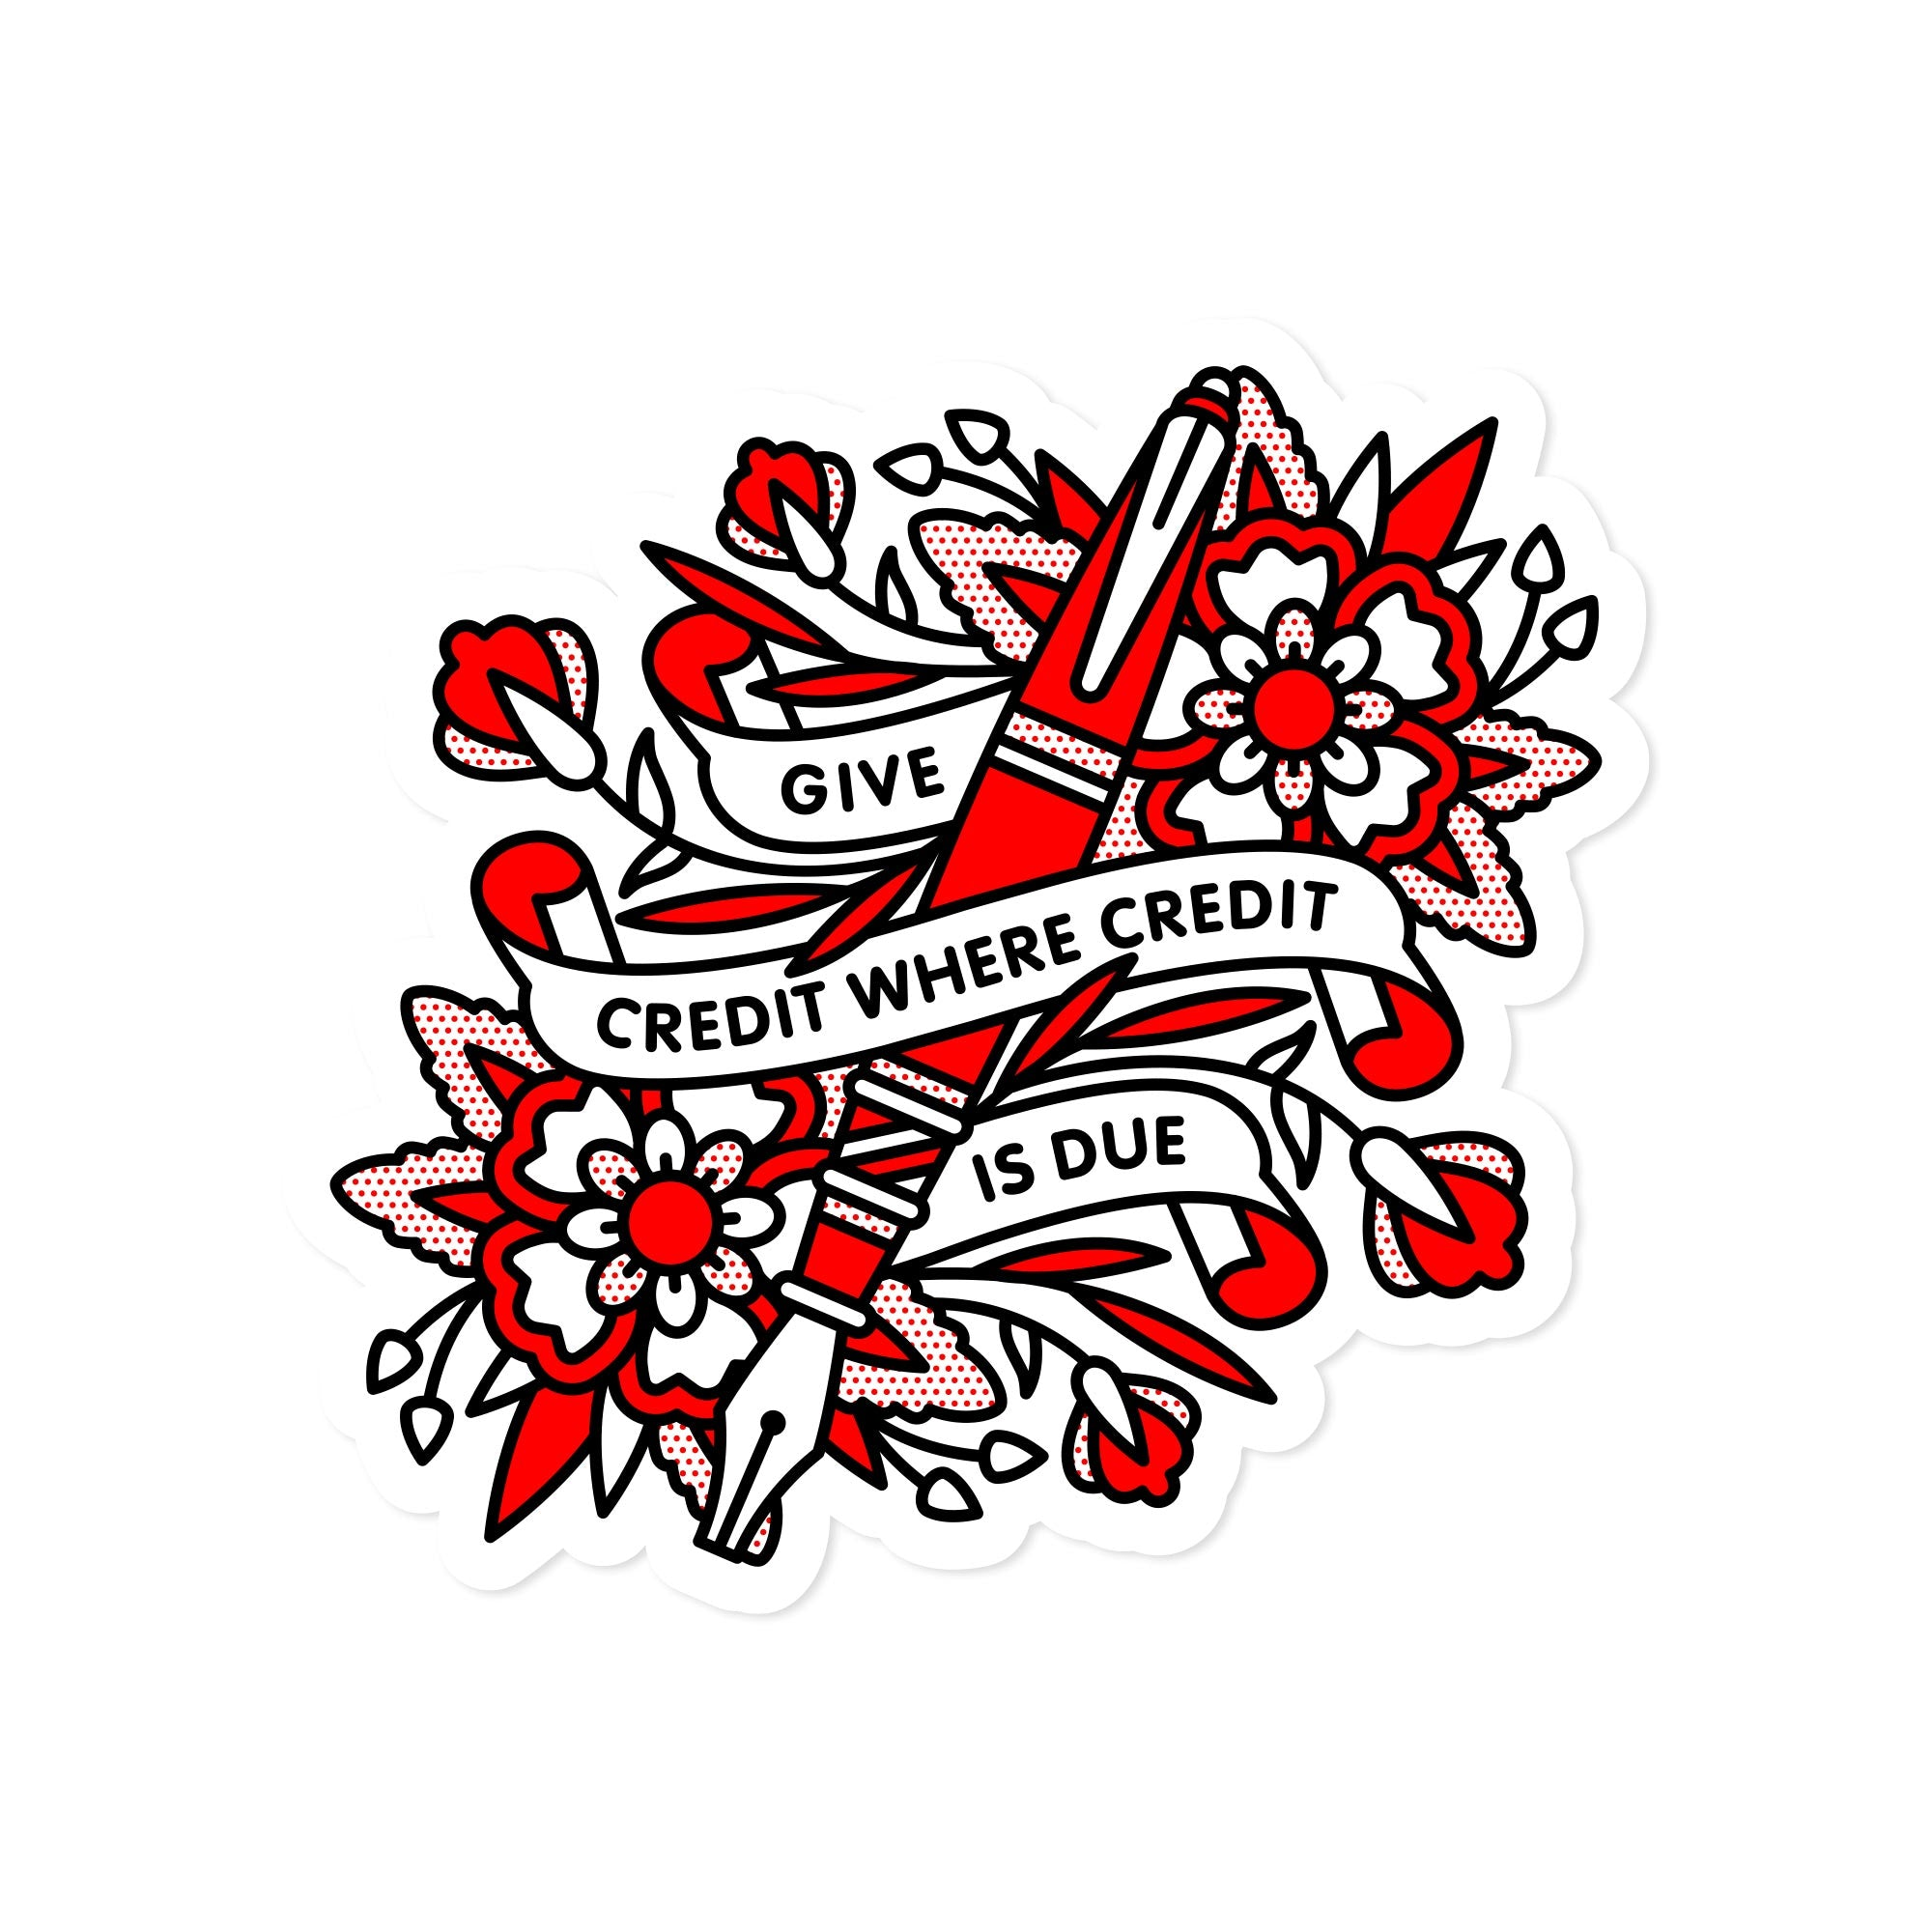 "Product image. Sticker depicts a pen surrounded by flowers and banners. Banner reads ""Give credit where credit is due""."